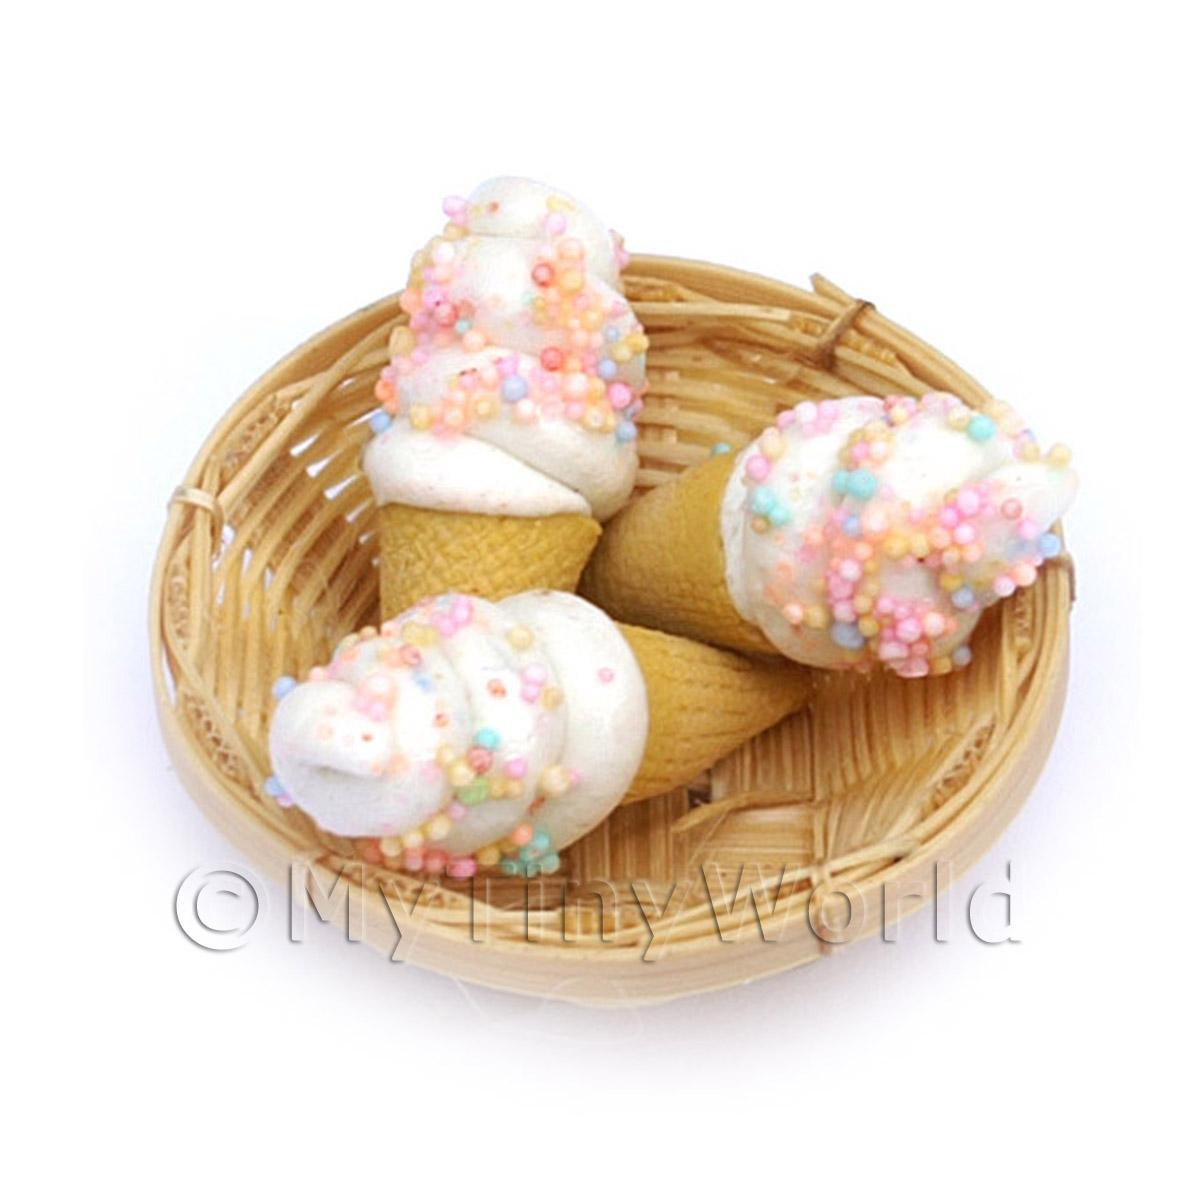 3 Dolls House Miniature Marshmallow Cones In A Small Basket